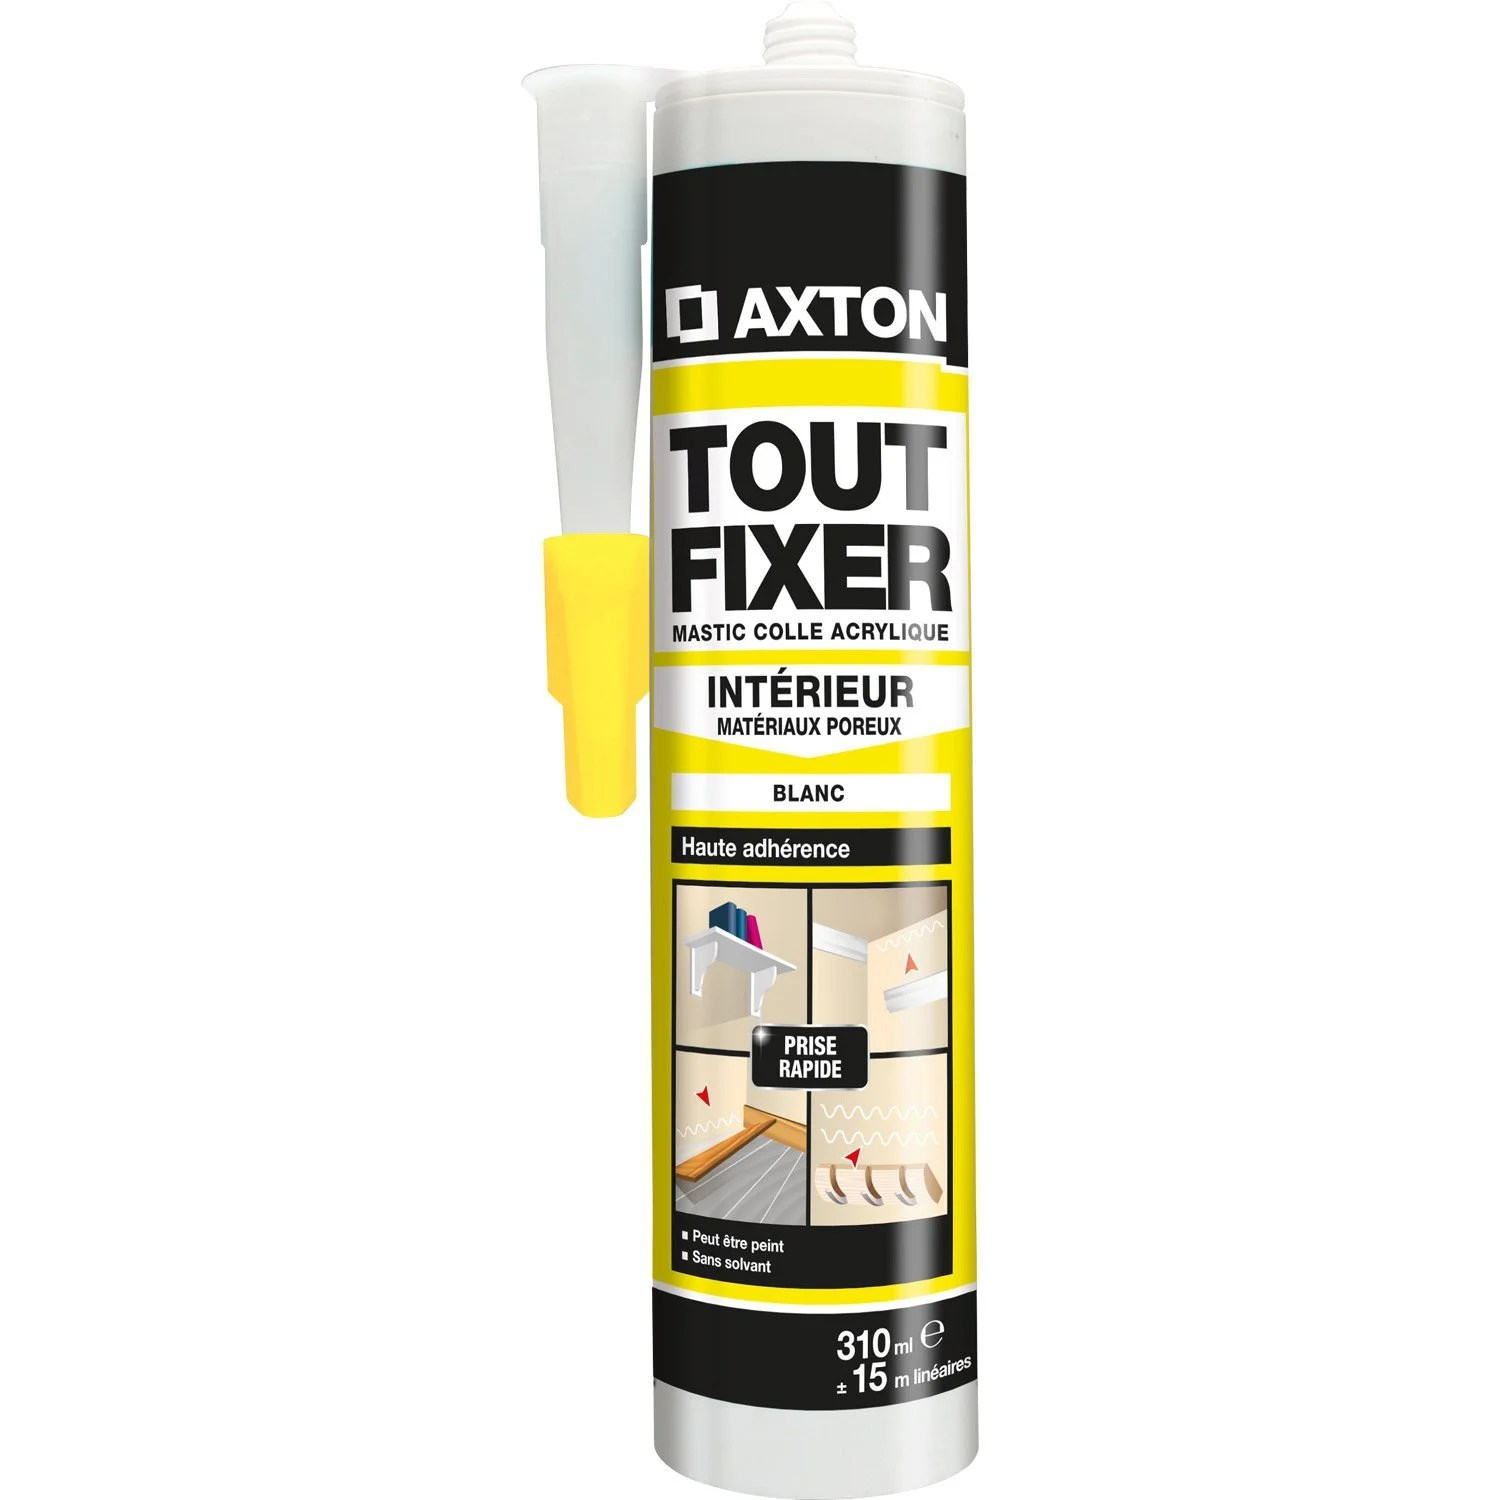 Colle Pour Plinthe Carrelage Colle Mastic Tout Fixer Axton 310 Ml Leroy Merlin